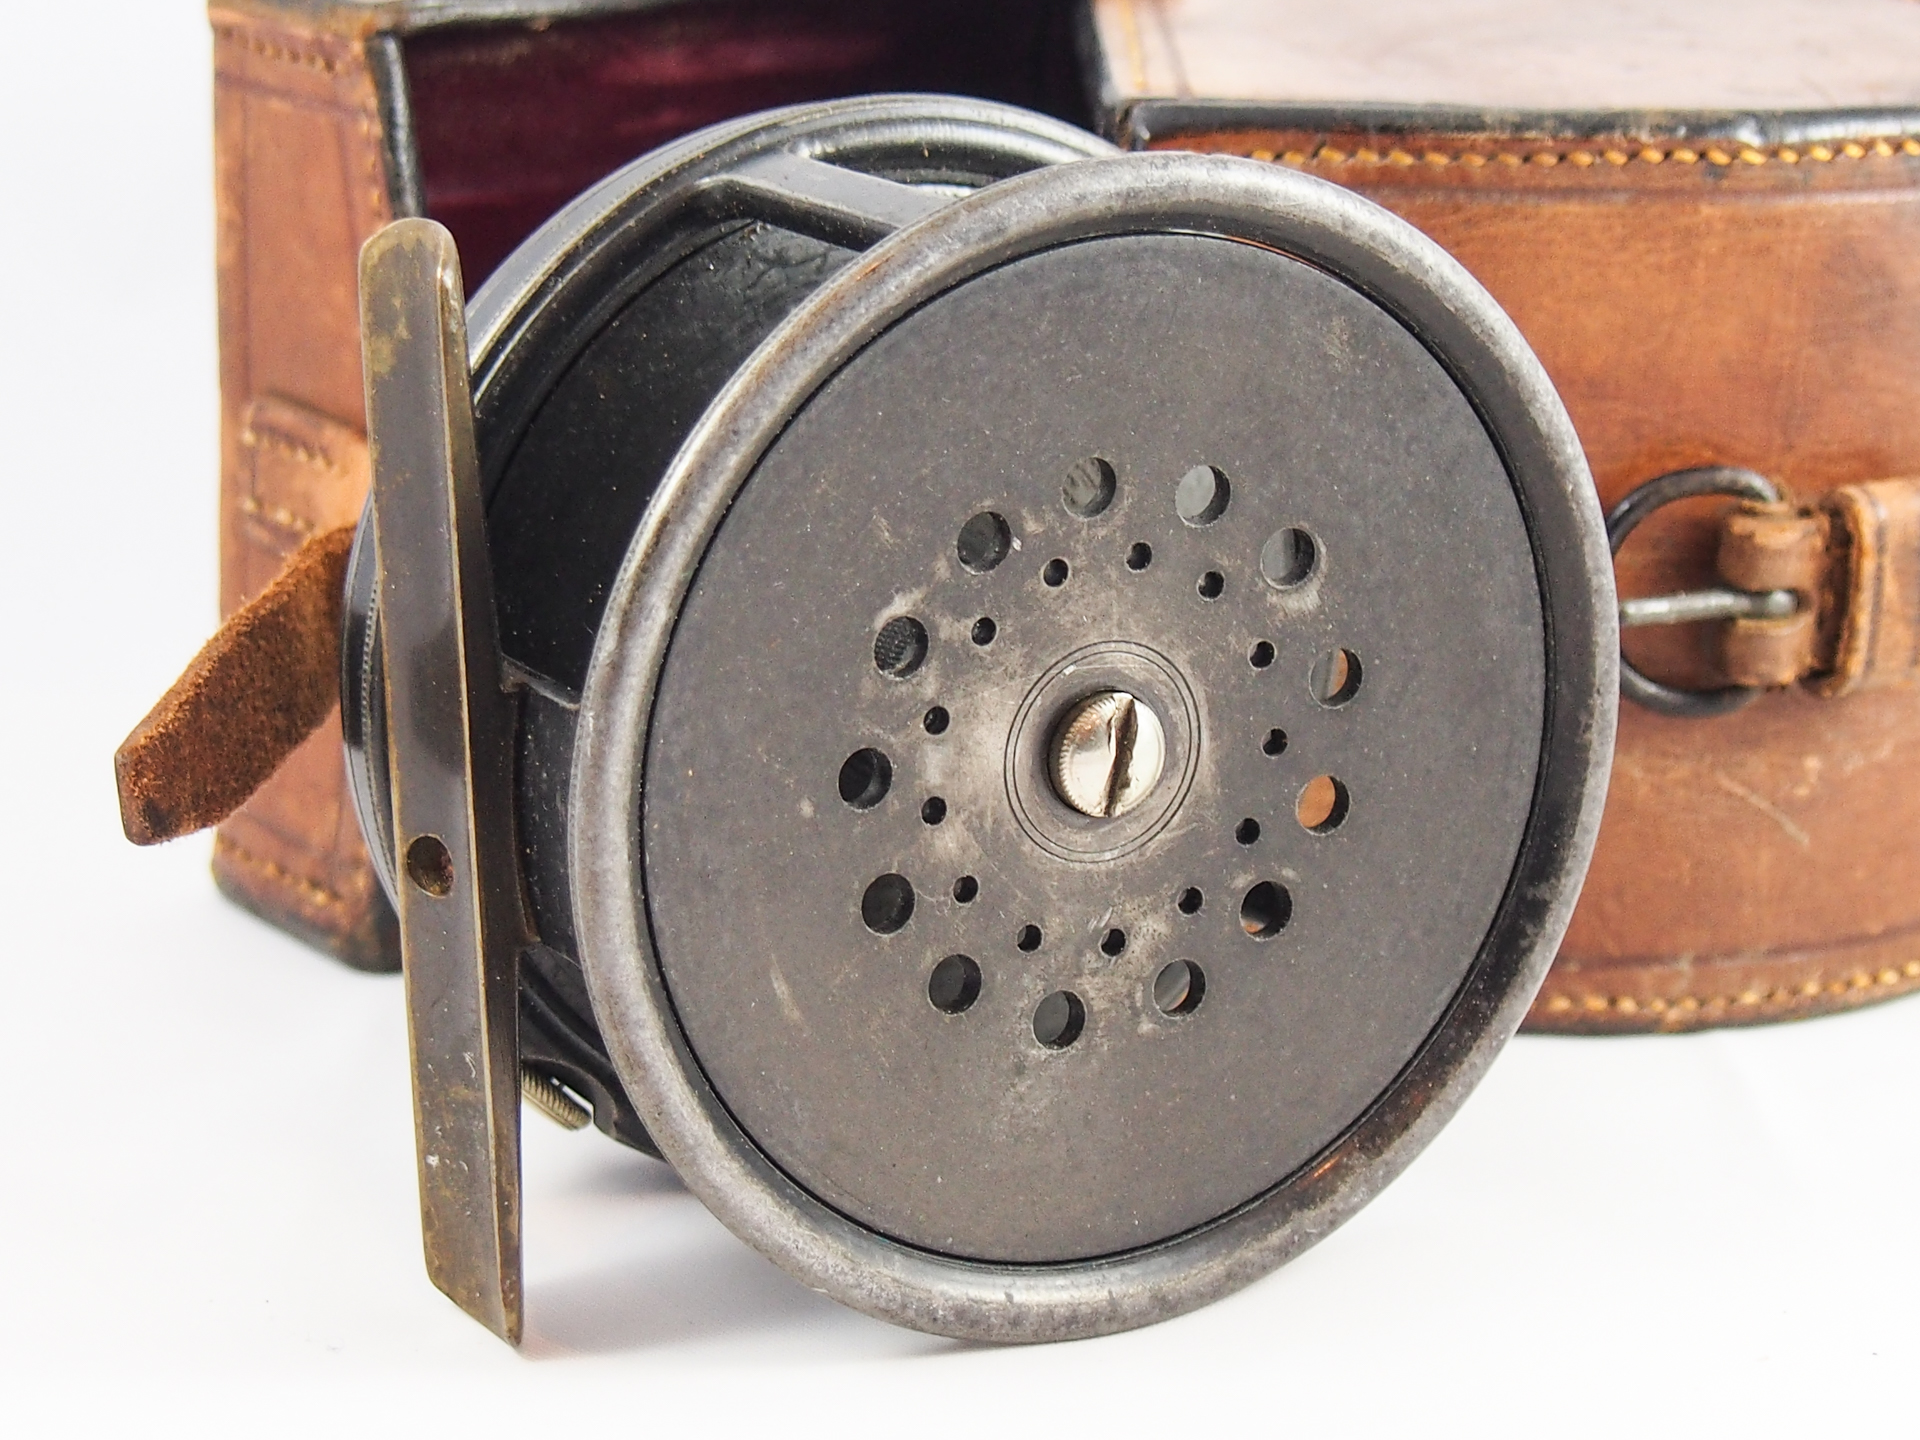 dating hardy perfect reels Hardy bros have been manufactures of fine fishing reels and rods since the late 1800 older reels and rods have become very desirable collector's items and dating the years of manufacture of your hardy is very important in establishing its value.